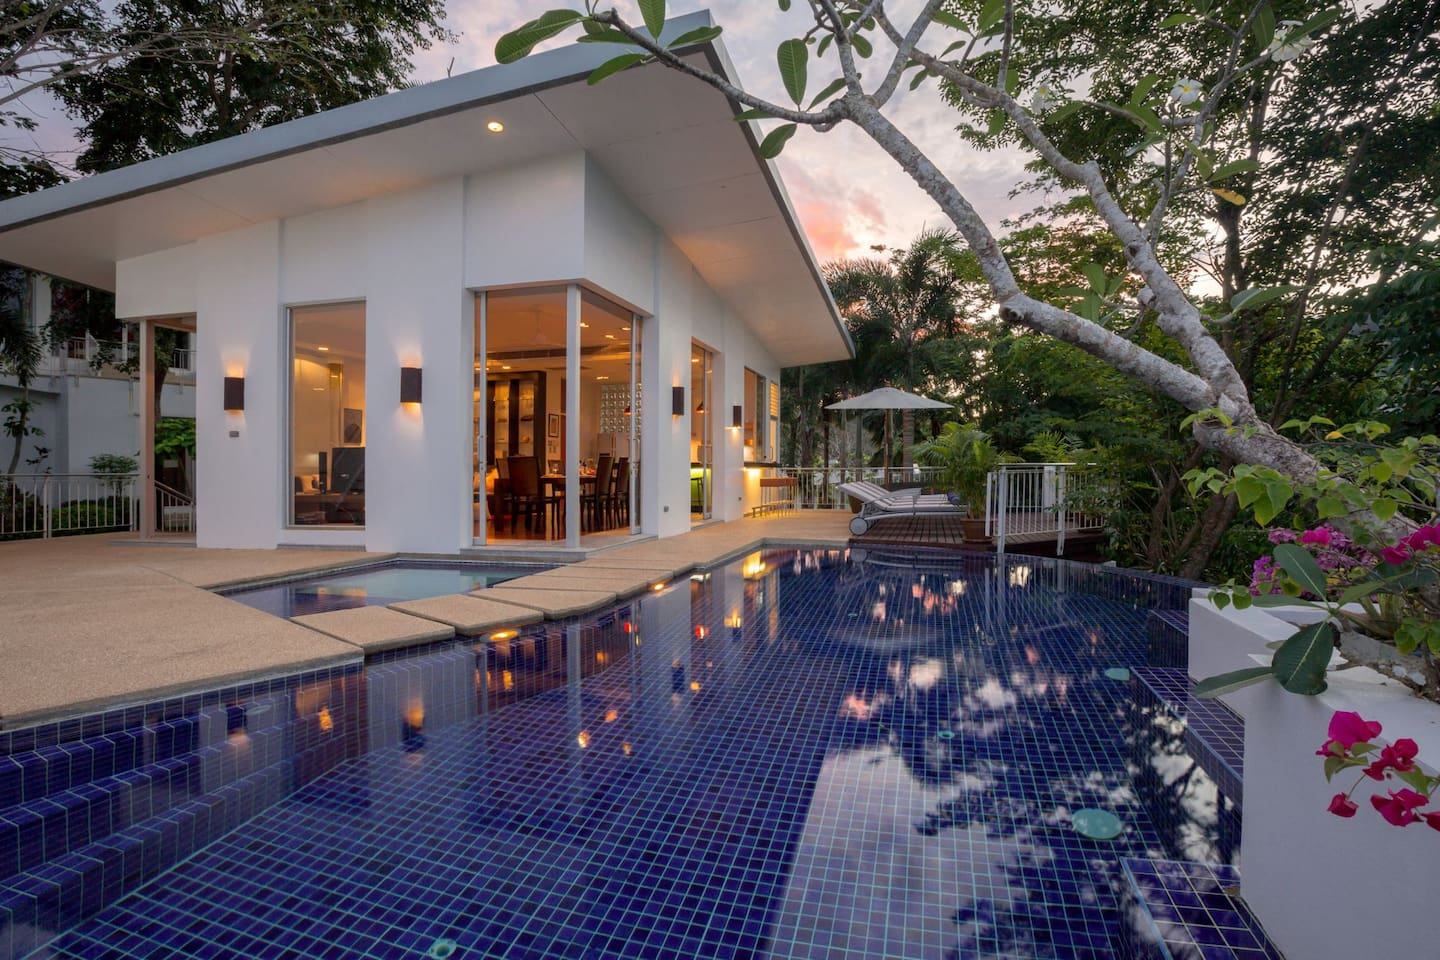 1st Villa with 4 bedrooms